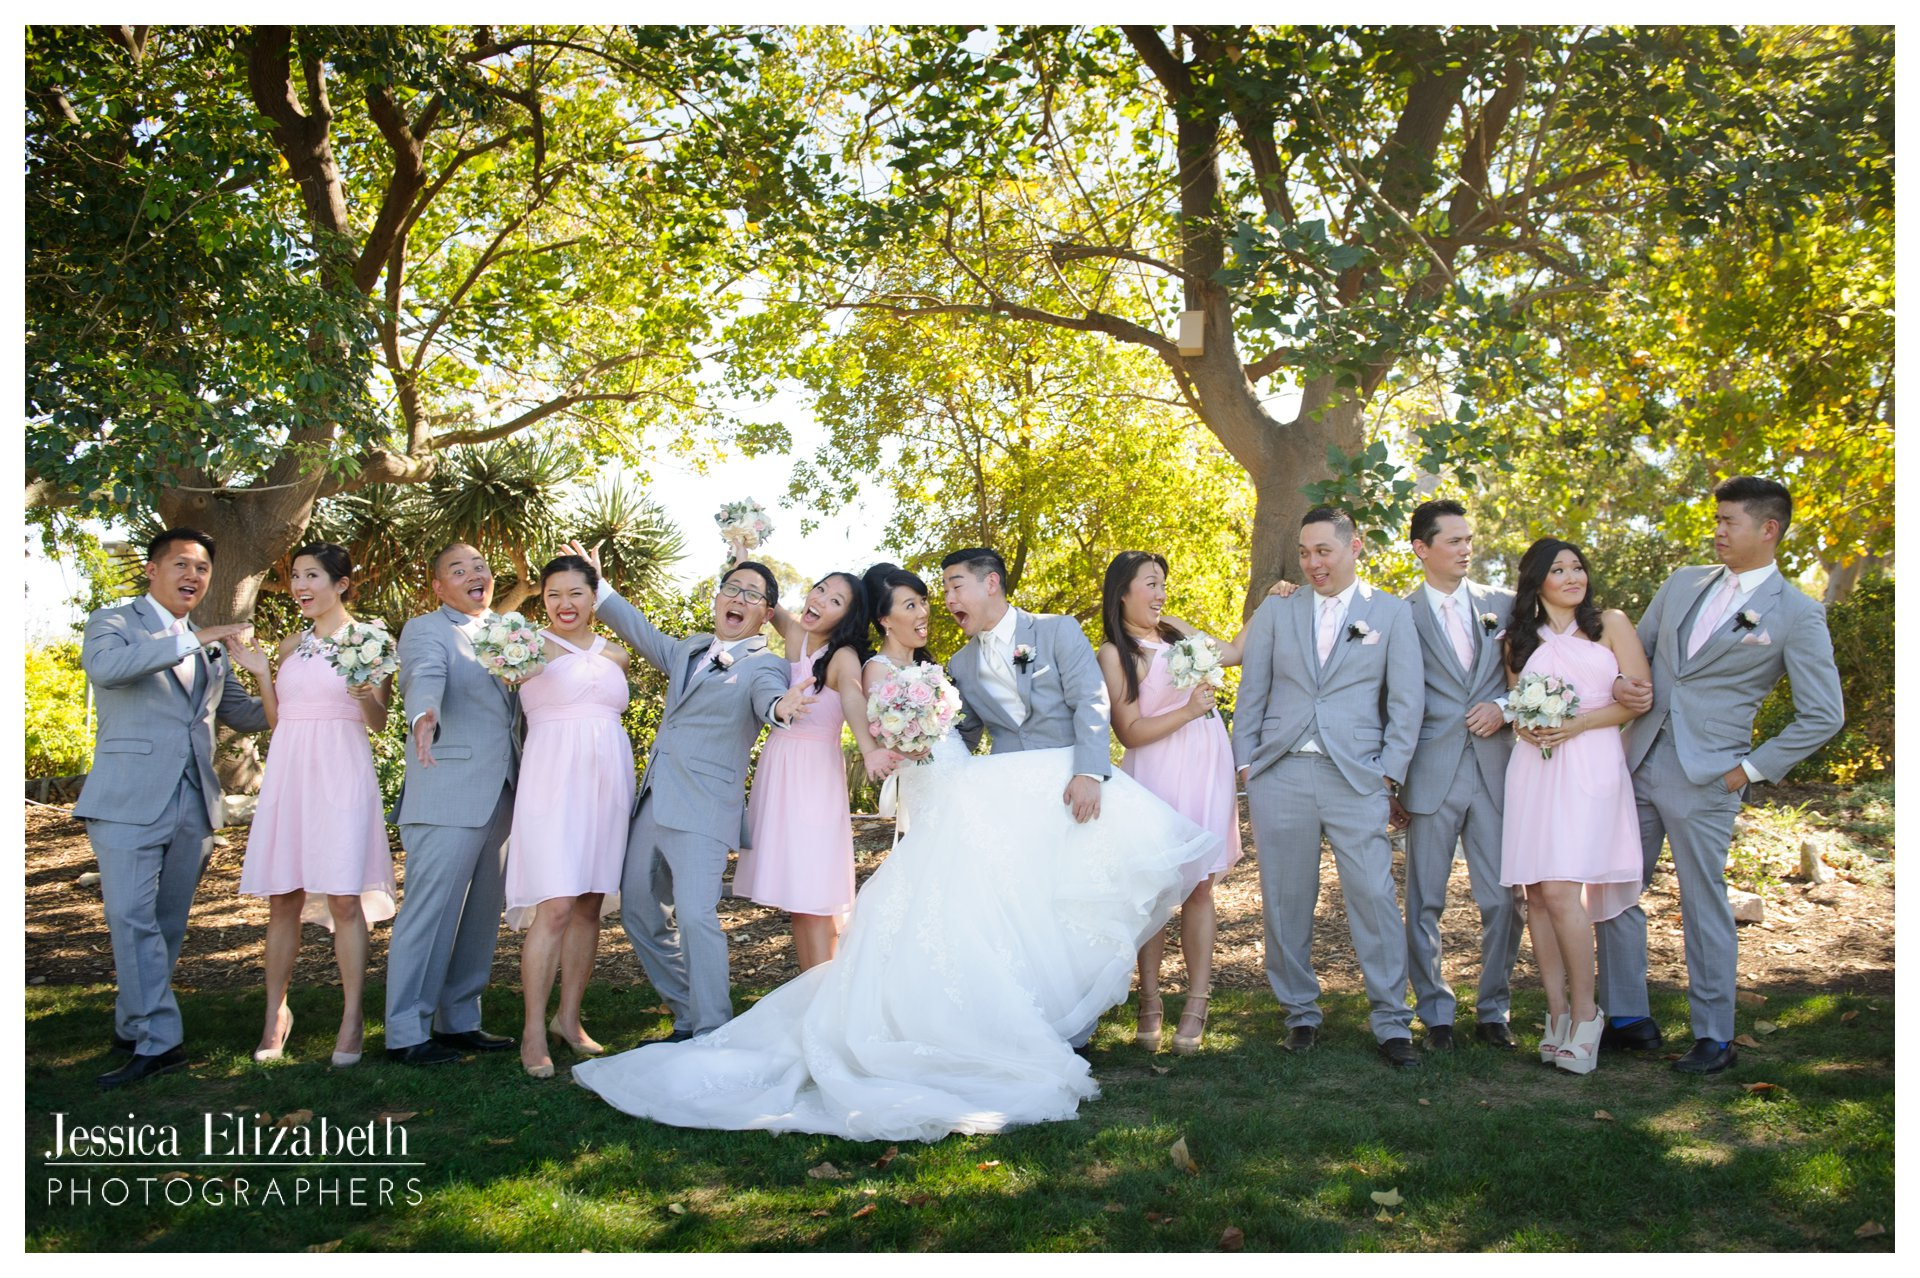 07-South Coast Botanic Garden Palos Verdes Wedding Photography by Jessica Elizabeth